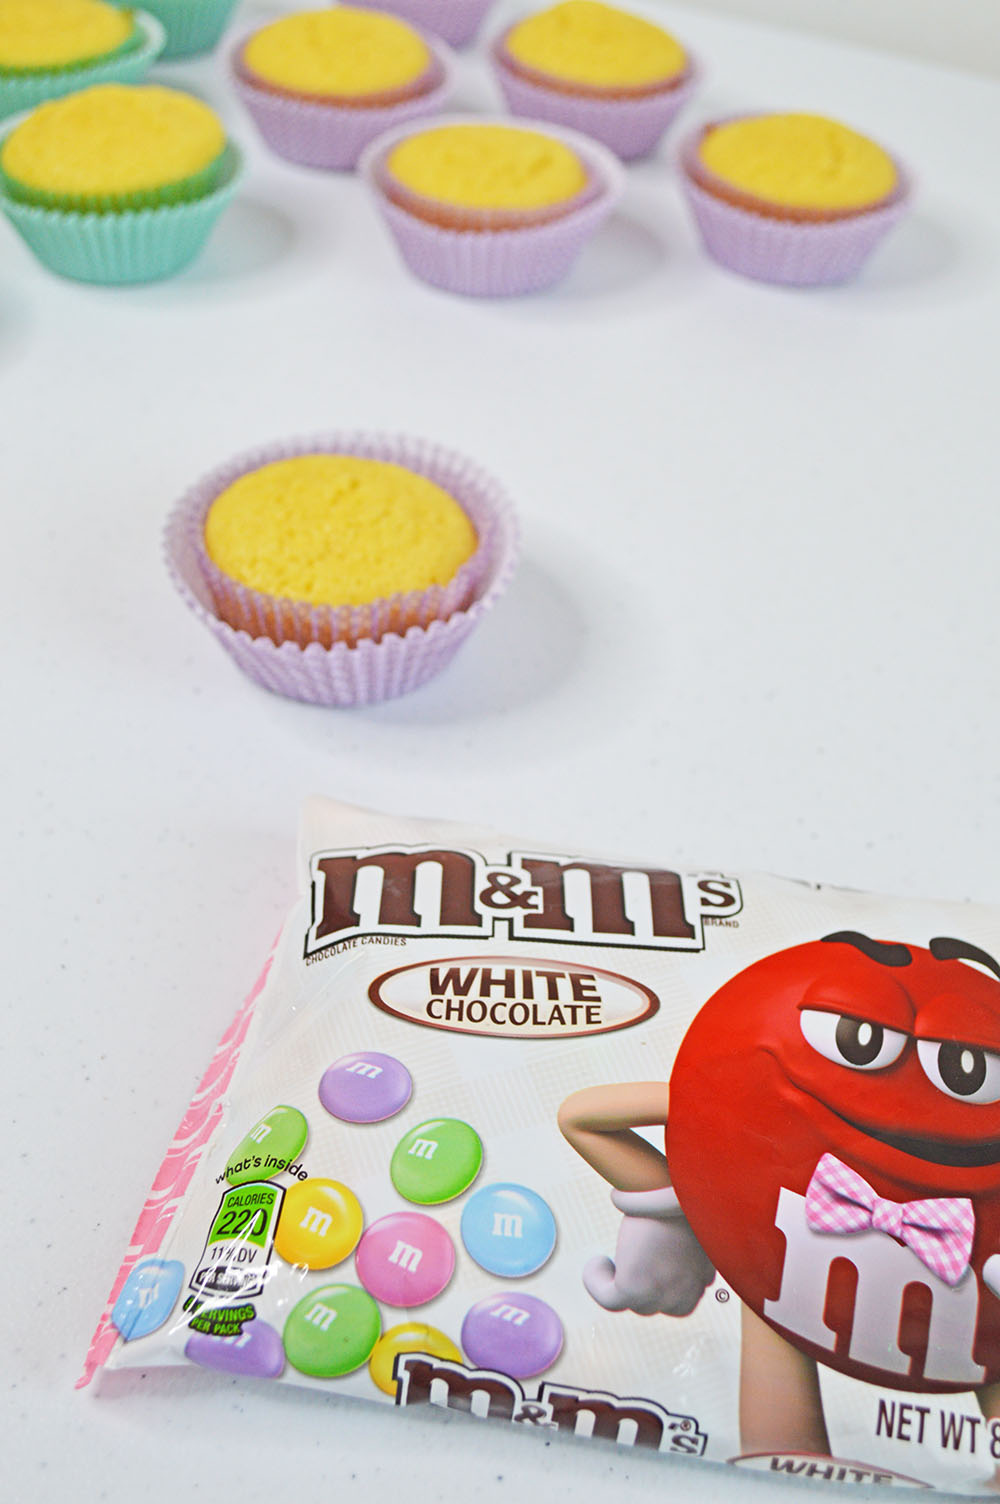 cupcakes and m&ms